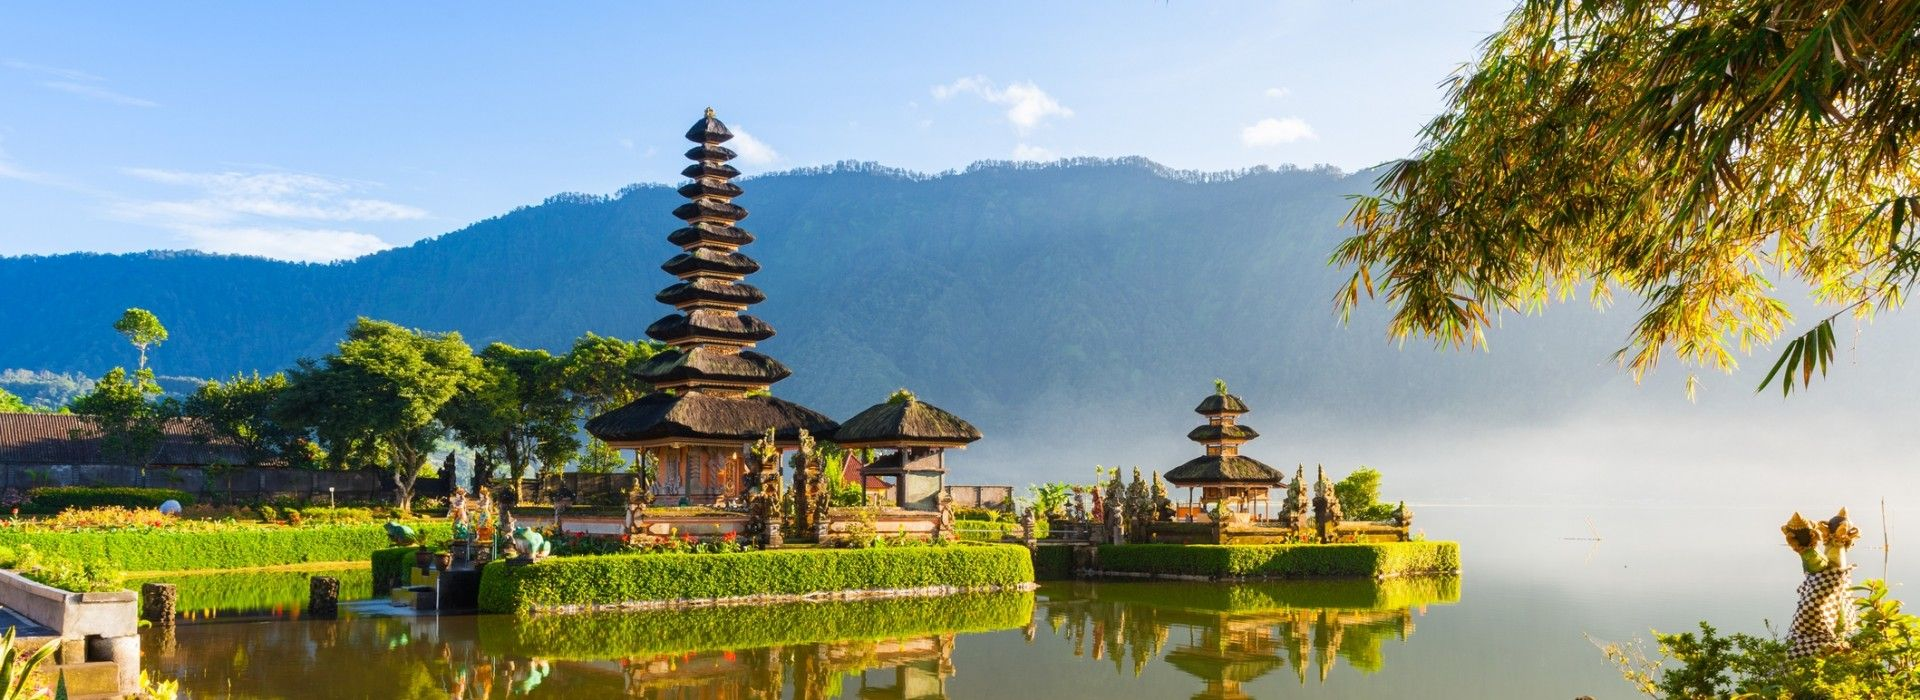 City sightseeing Tours in Indonesia